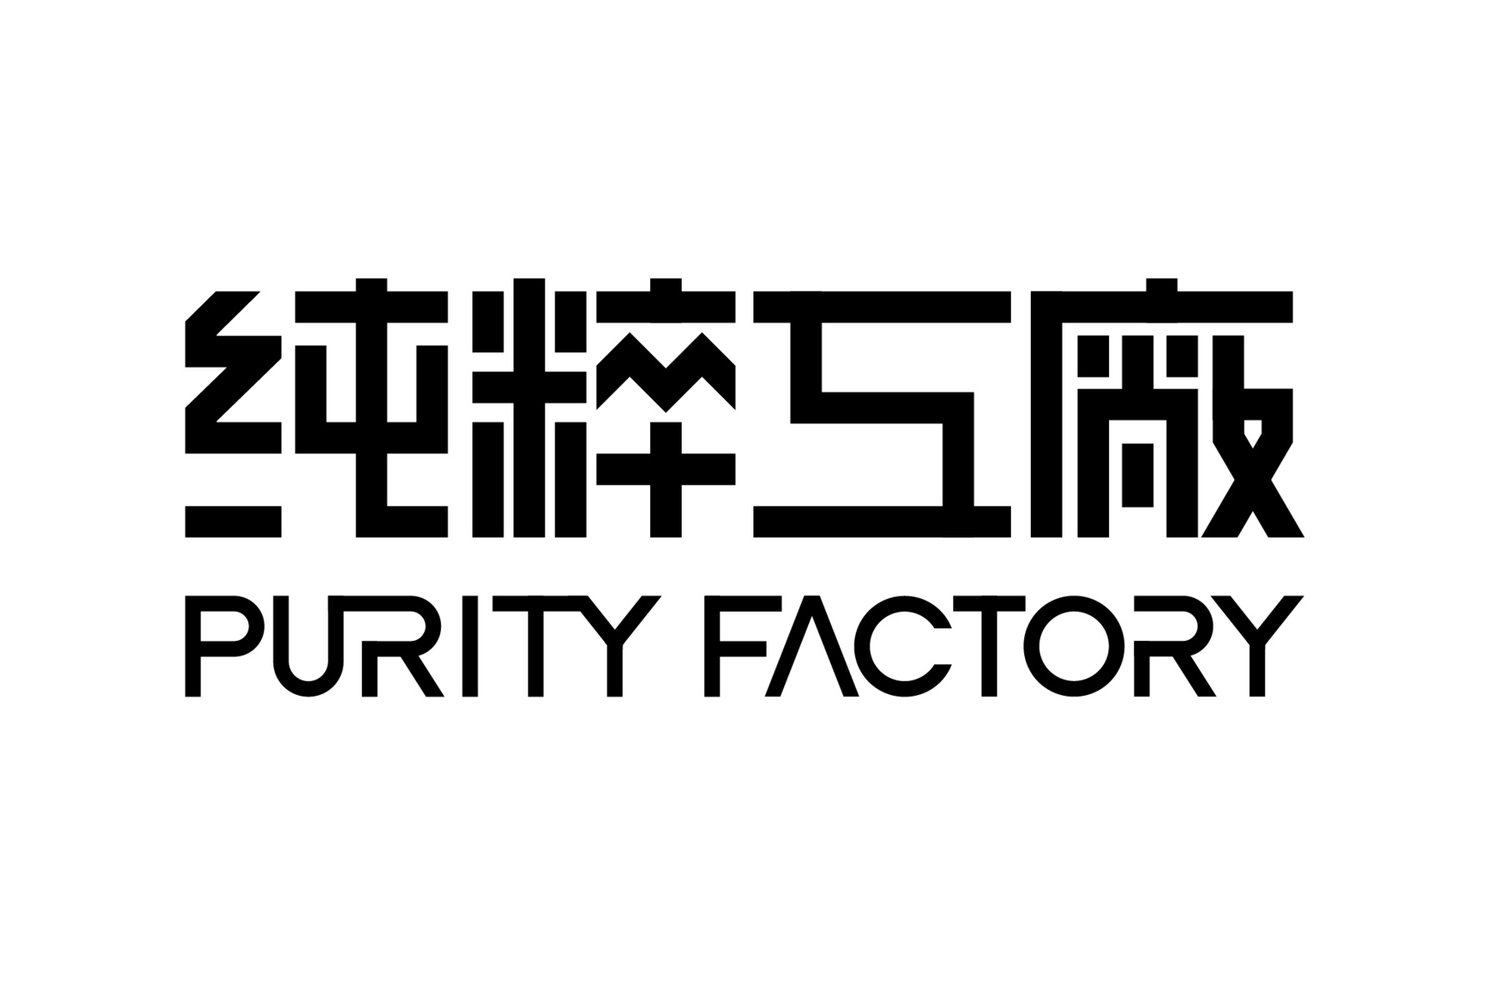 PURITY FACTORY